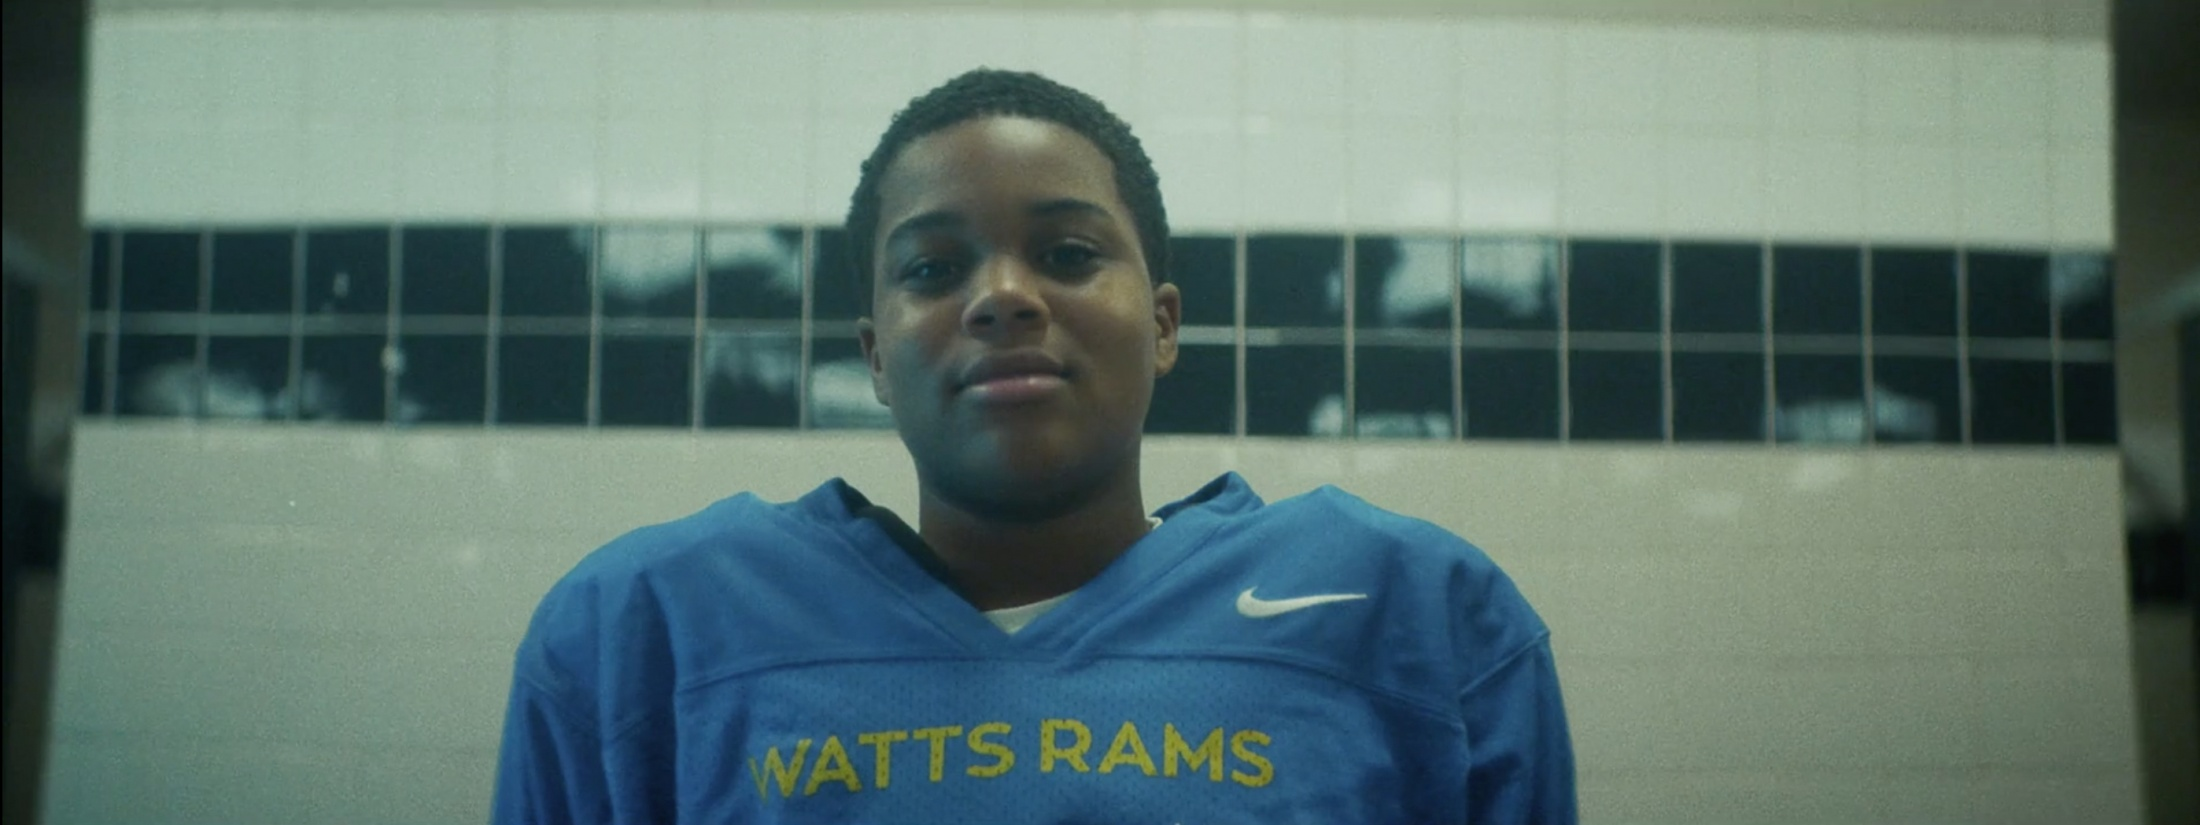 Watts Rams: A Story of Transformation Thumbnail